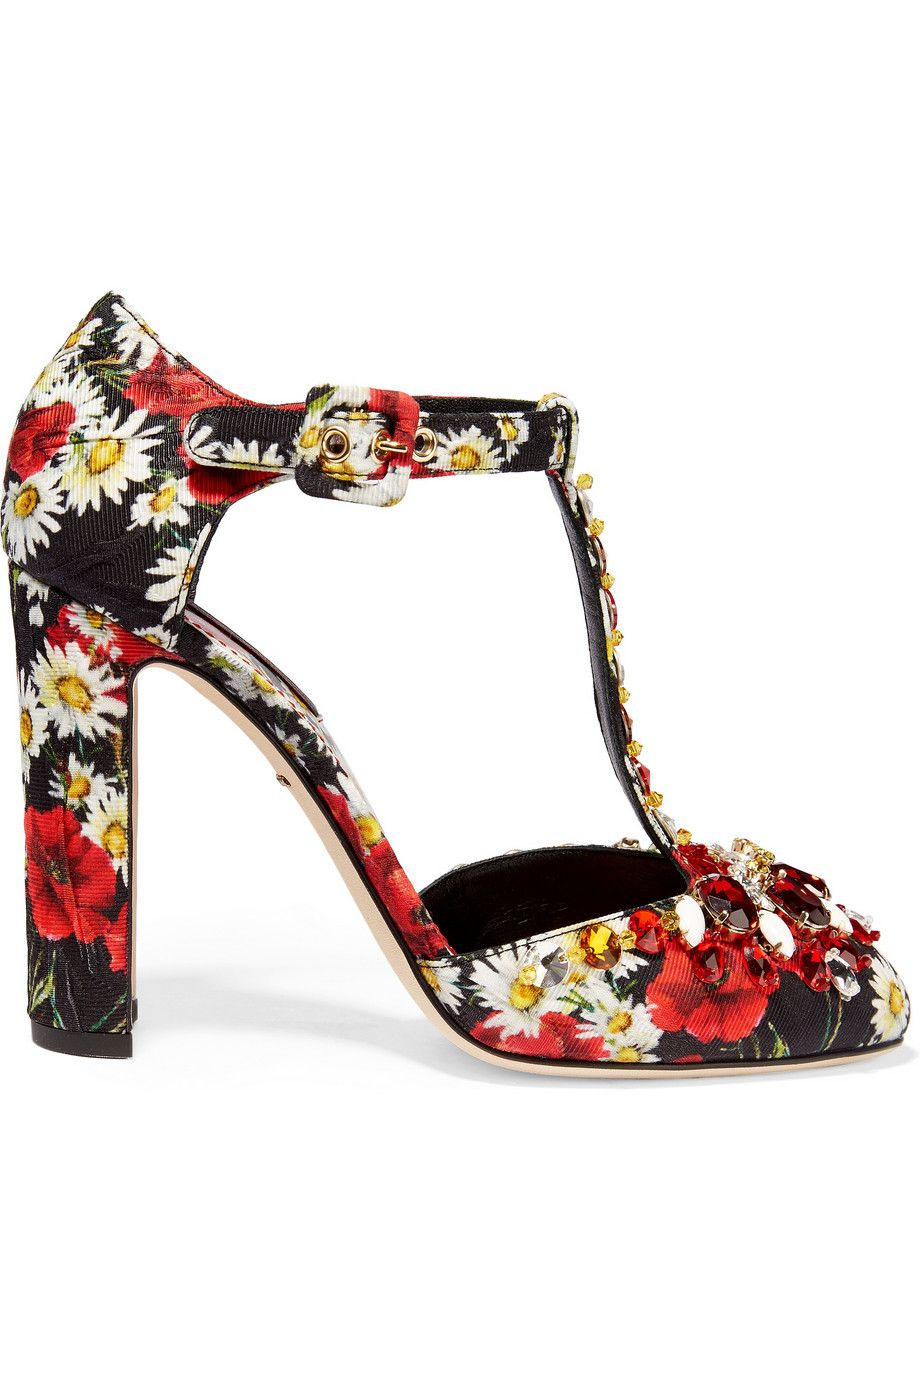 Dolce & Gabbana Embellished Jacquard T-Strap Pumps w/ Tags new arrival for sale outlet classic cheap geniue stockist 4Ekz8C